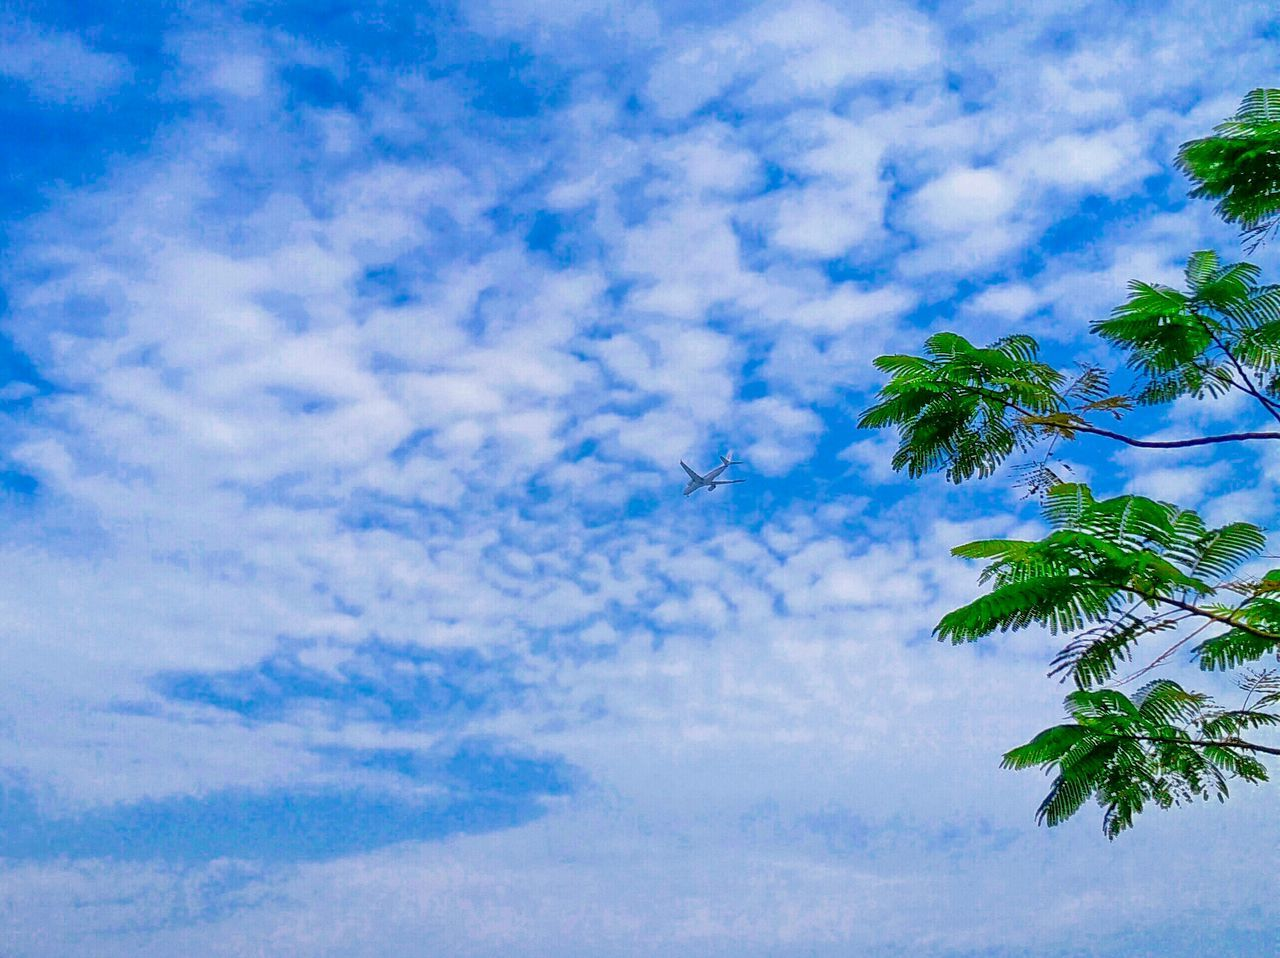 sky, cloud - sky, low angle view, tree, nature, no people, flying, blue, beauty in nature, day, outdoors, scenics, palm tree, bird